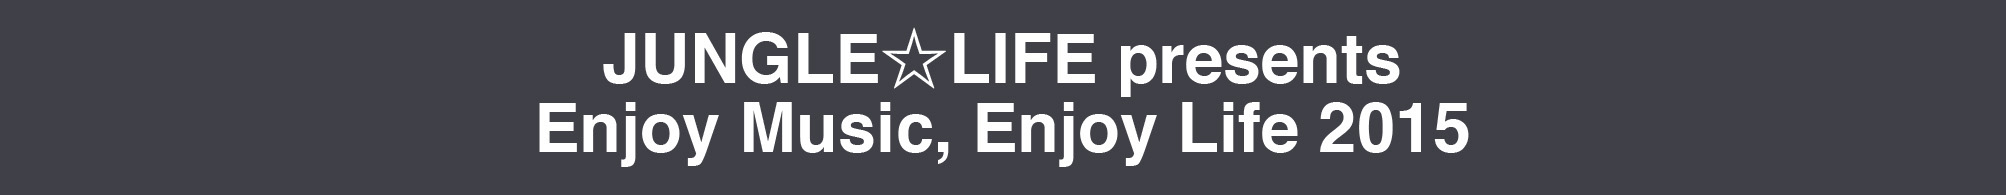 JUNGLE☆LIFE presents Enjoy Music, Enjoy Life 2015